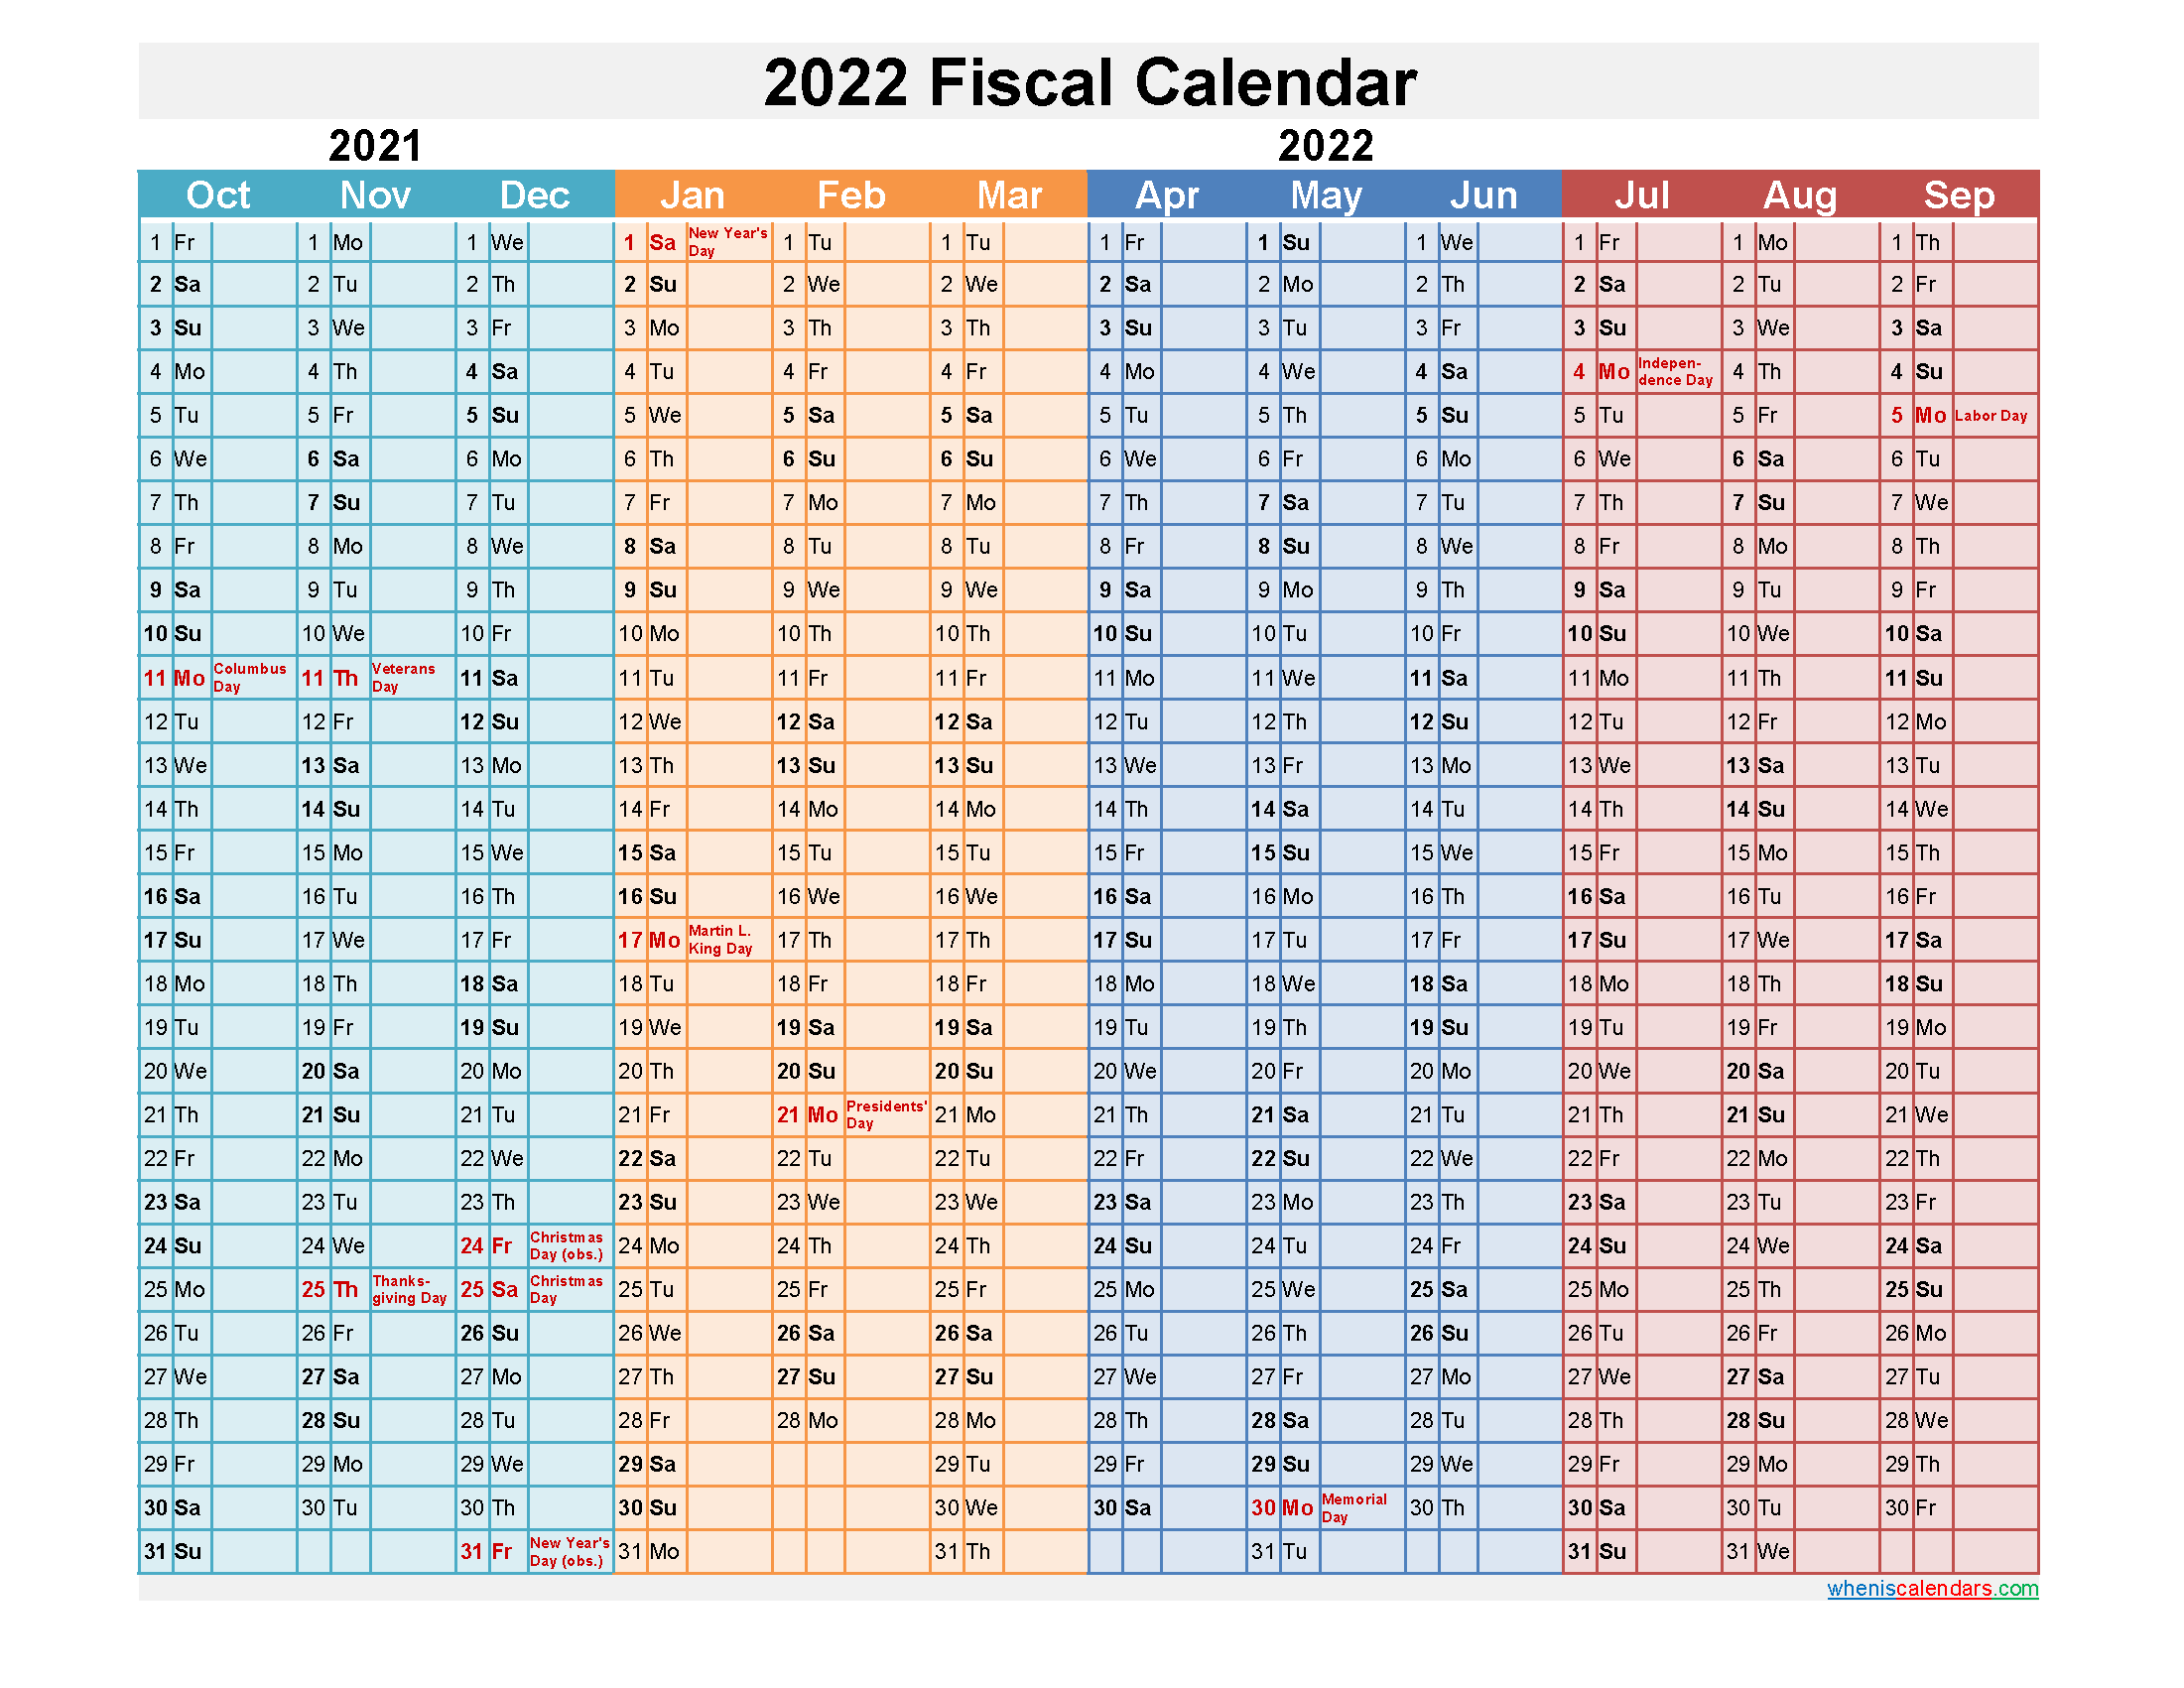 Fiscal Year 2022 Quarters